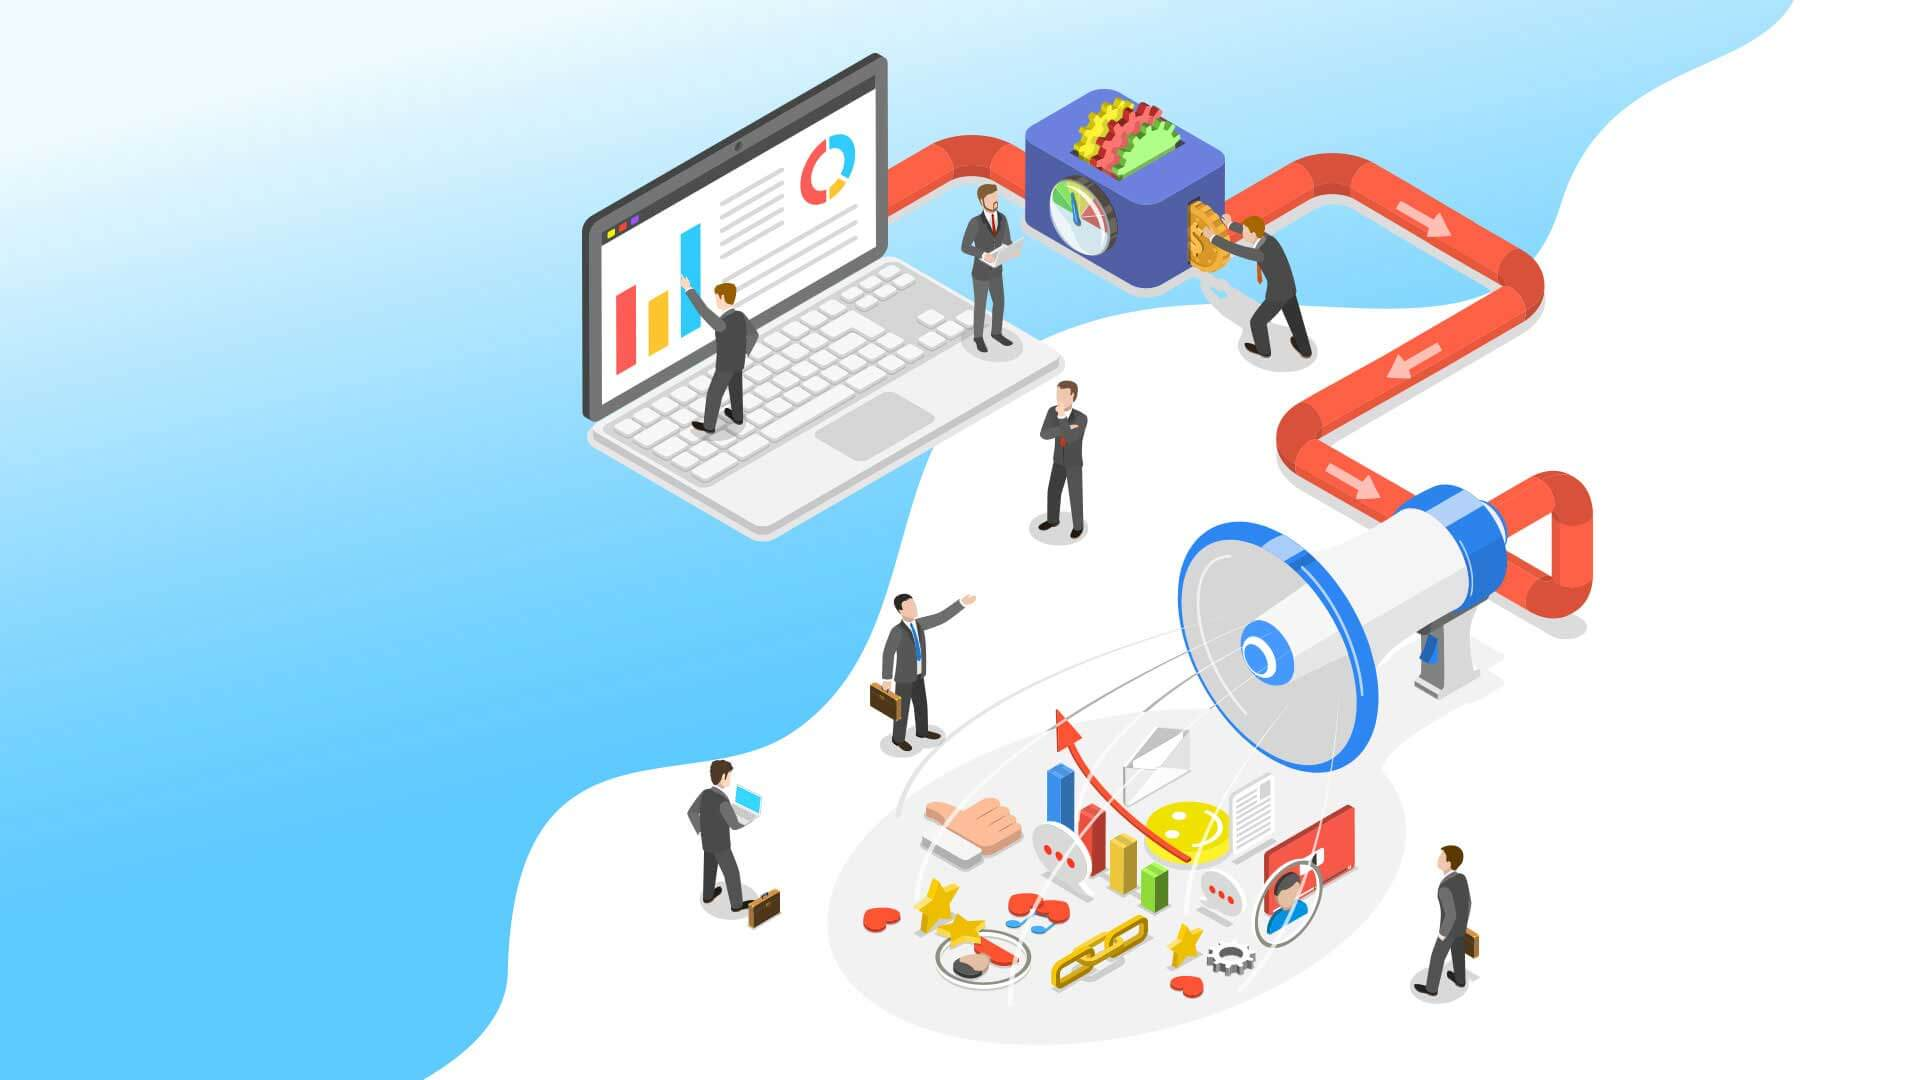 Programmatic advertising helps to target the right audience in e-commerce